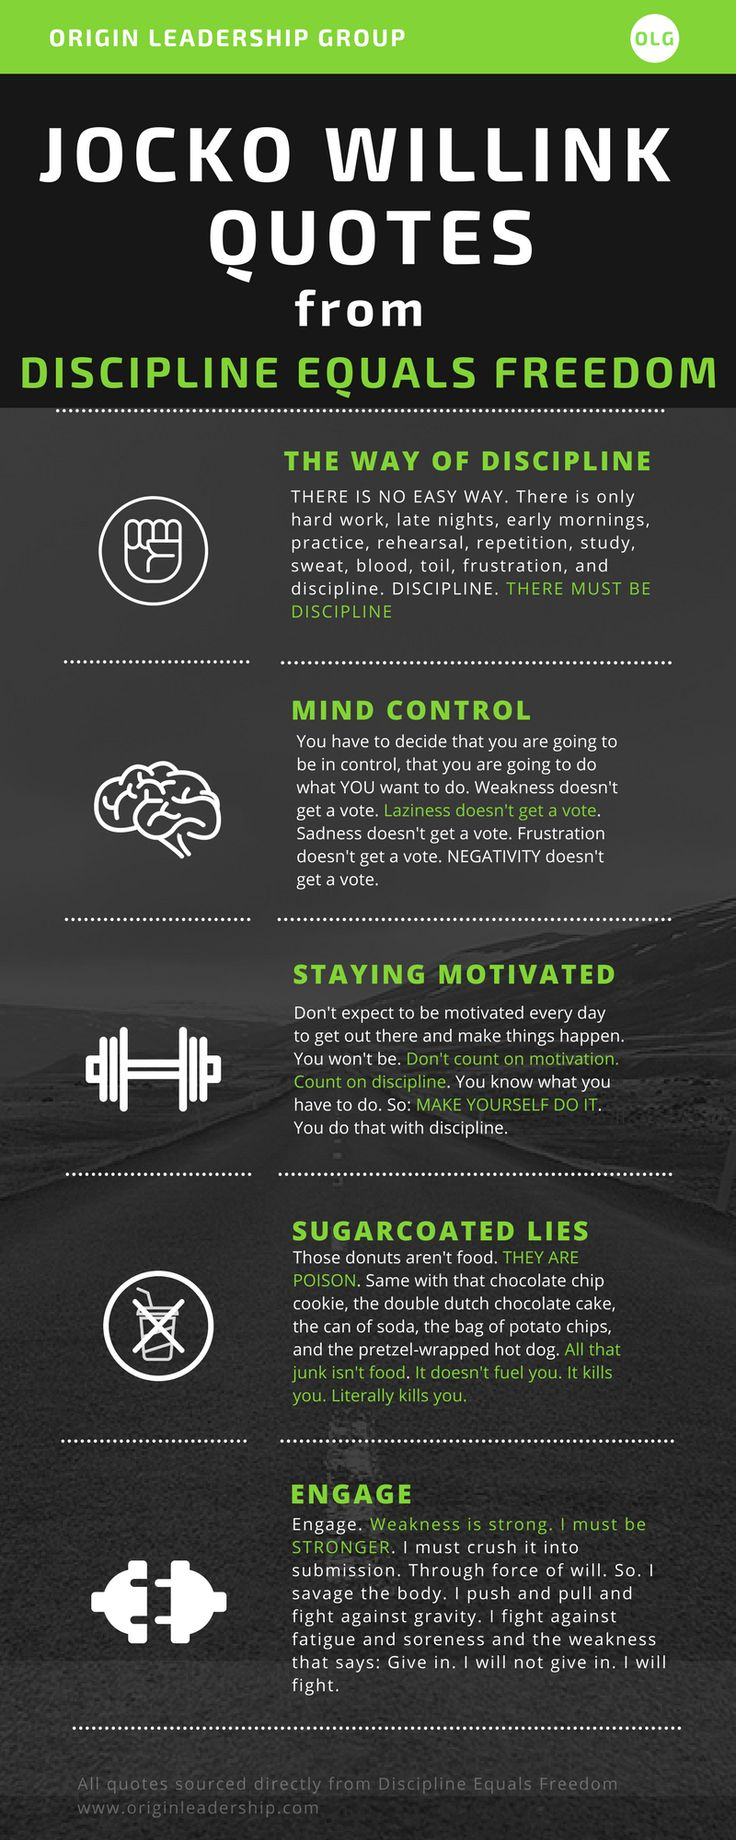 31 Phenomenal Jocko Willink Quotes from Discipline Equals Freedom. Get [Infographic] #infographic 31 Phenomenal Jocko Willink Quotes from Discipline Equals Freedom. Get [Infographic] #infographic